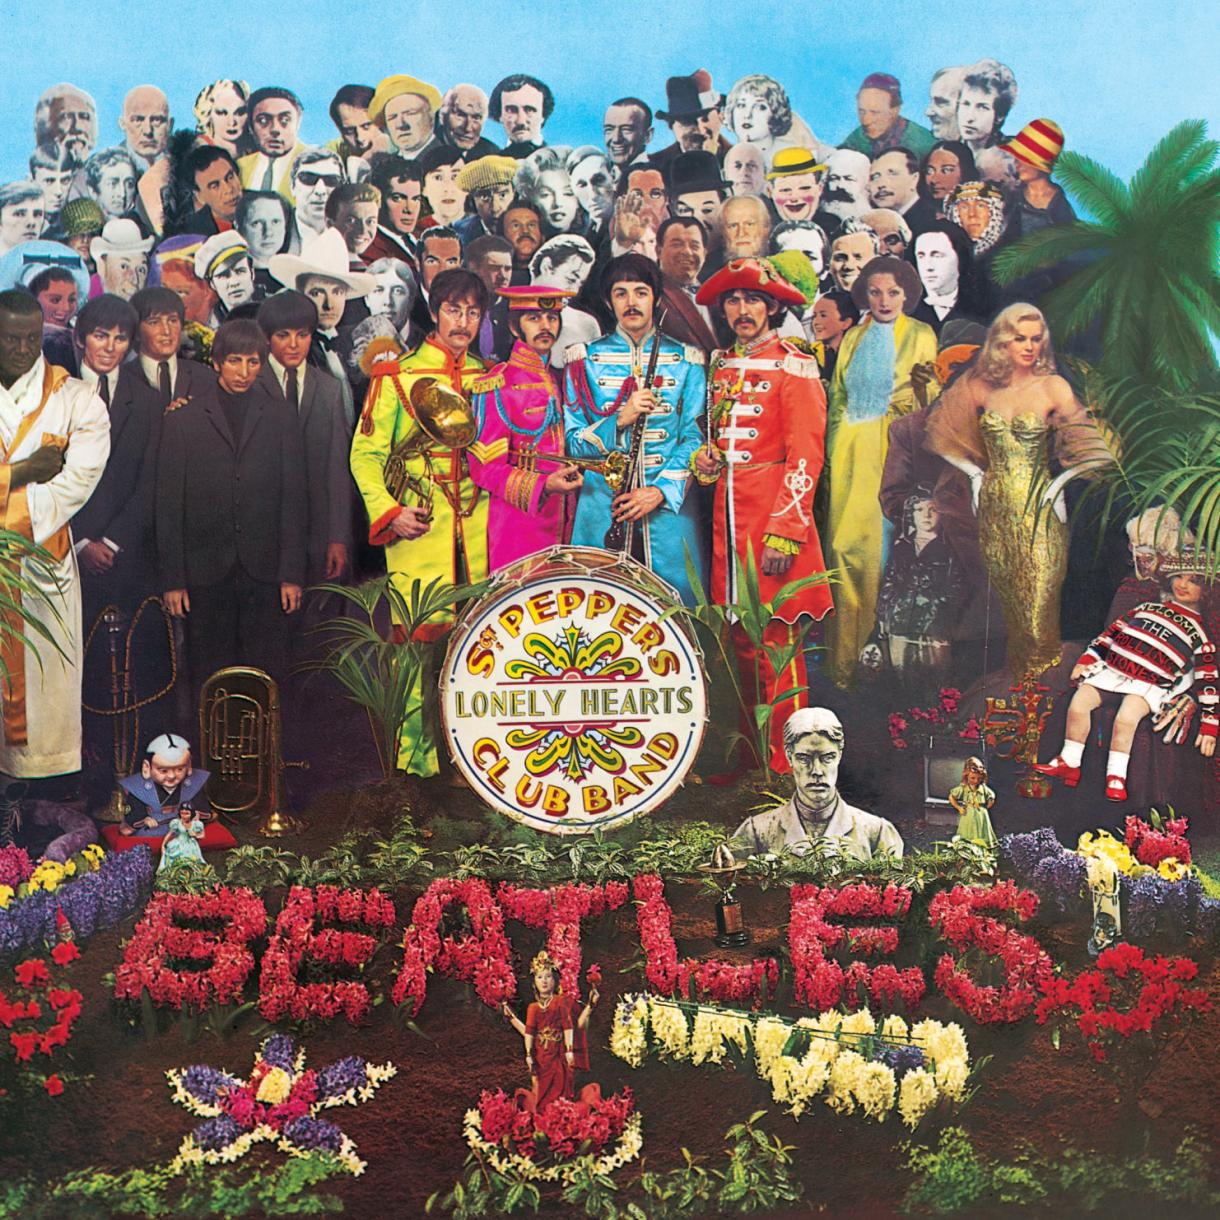 Sgt. Peppers Lonely Hearts Club Band | Capitol